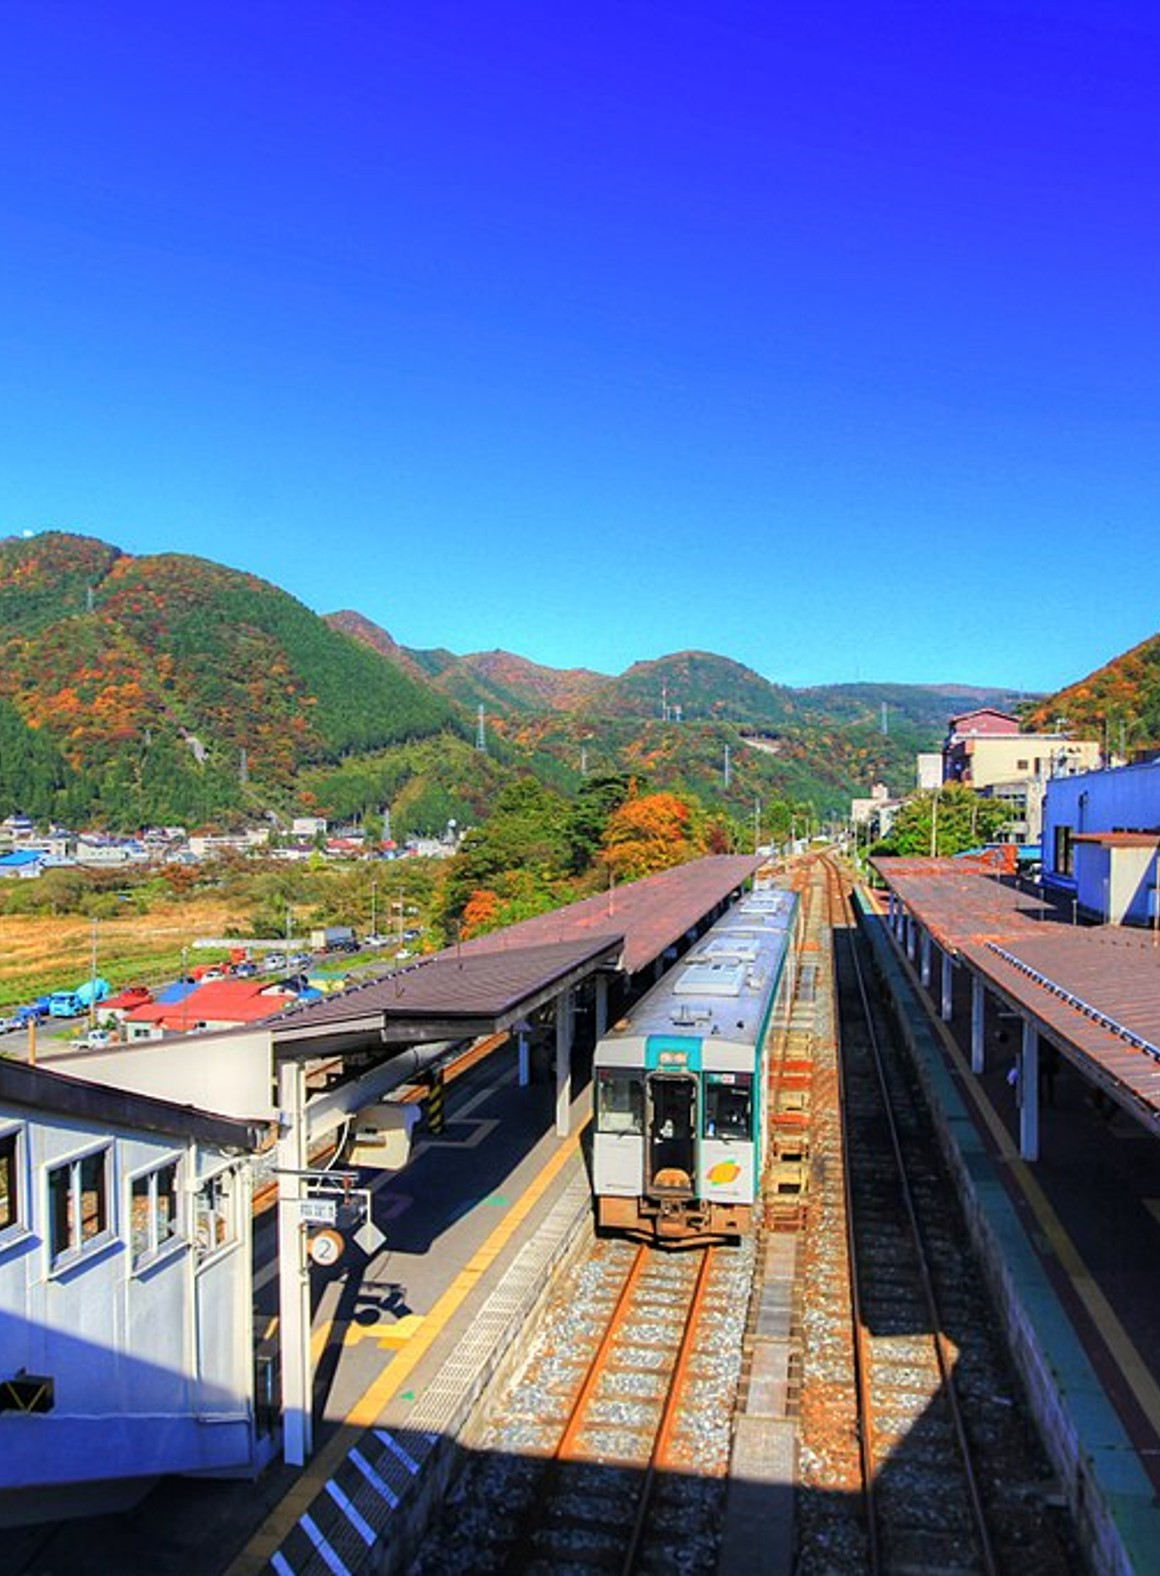 We have summarized the recommended spots for Naruko Onsen